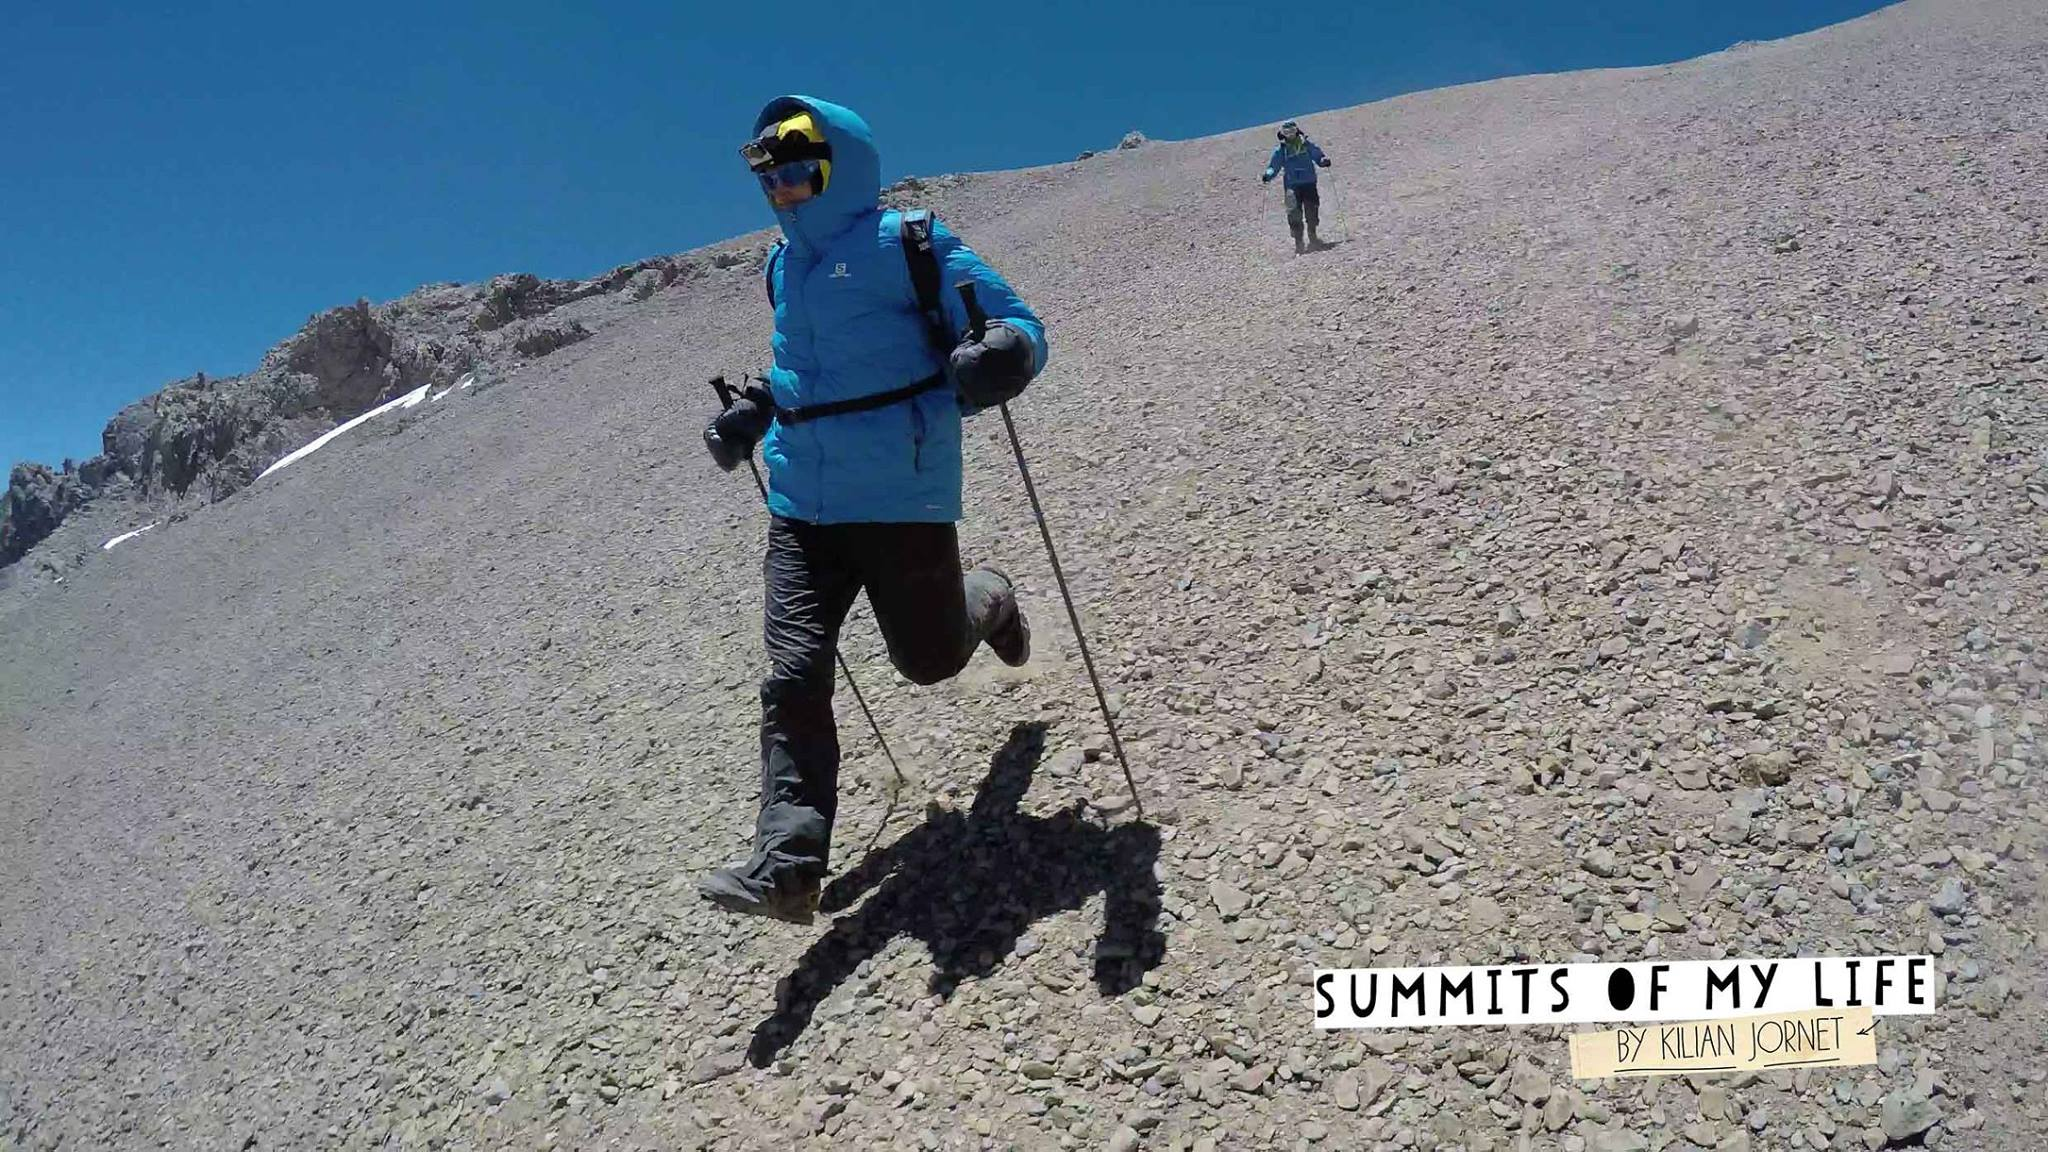 kilan-route-at-aconcagua-record-05